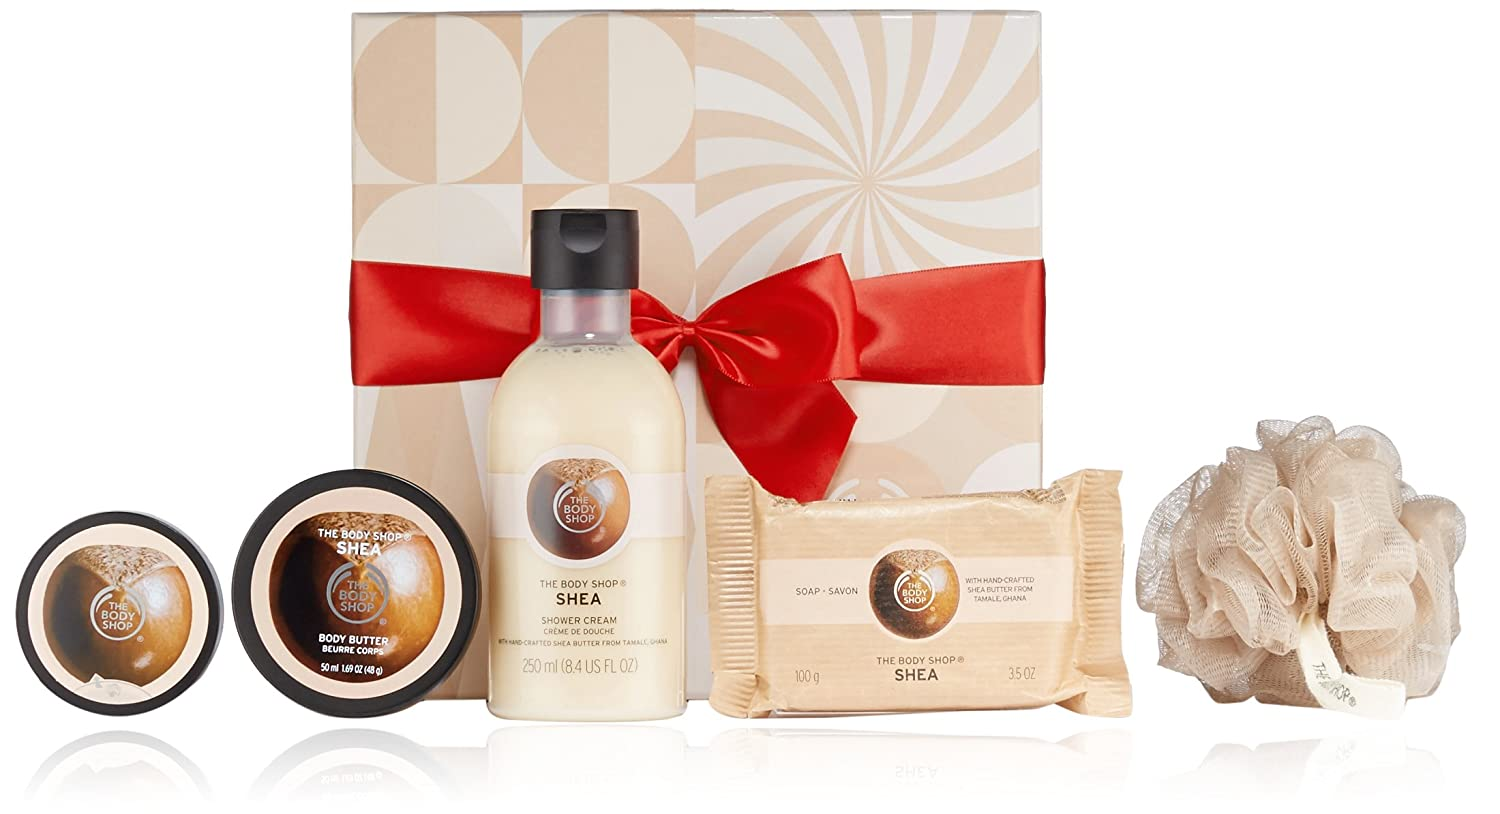 The Body Shop Shea Festive Pic...